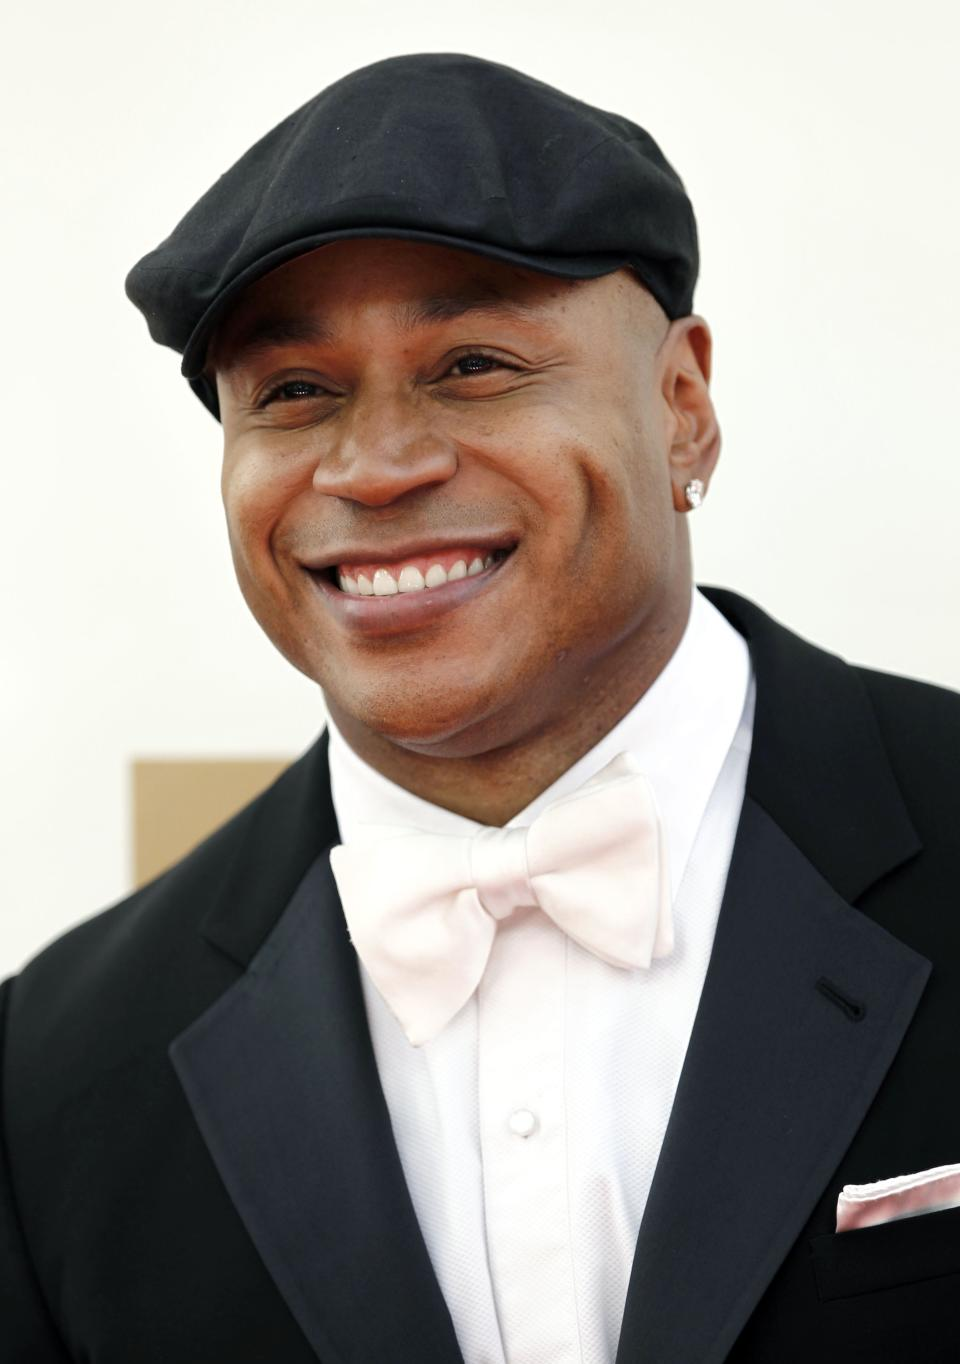 FILE - In this Sept. 18, 2011 file photo, LL Cool J arrives at the 63rd Primetime Emmy Awards in Los Angeles. Los Angeles police say the rapper grabbed and held a burglary suspect at his Studio City home Wednesday morning Aug. 22,2012. (AP Photo/Matt Sayles, File)